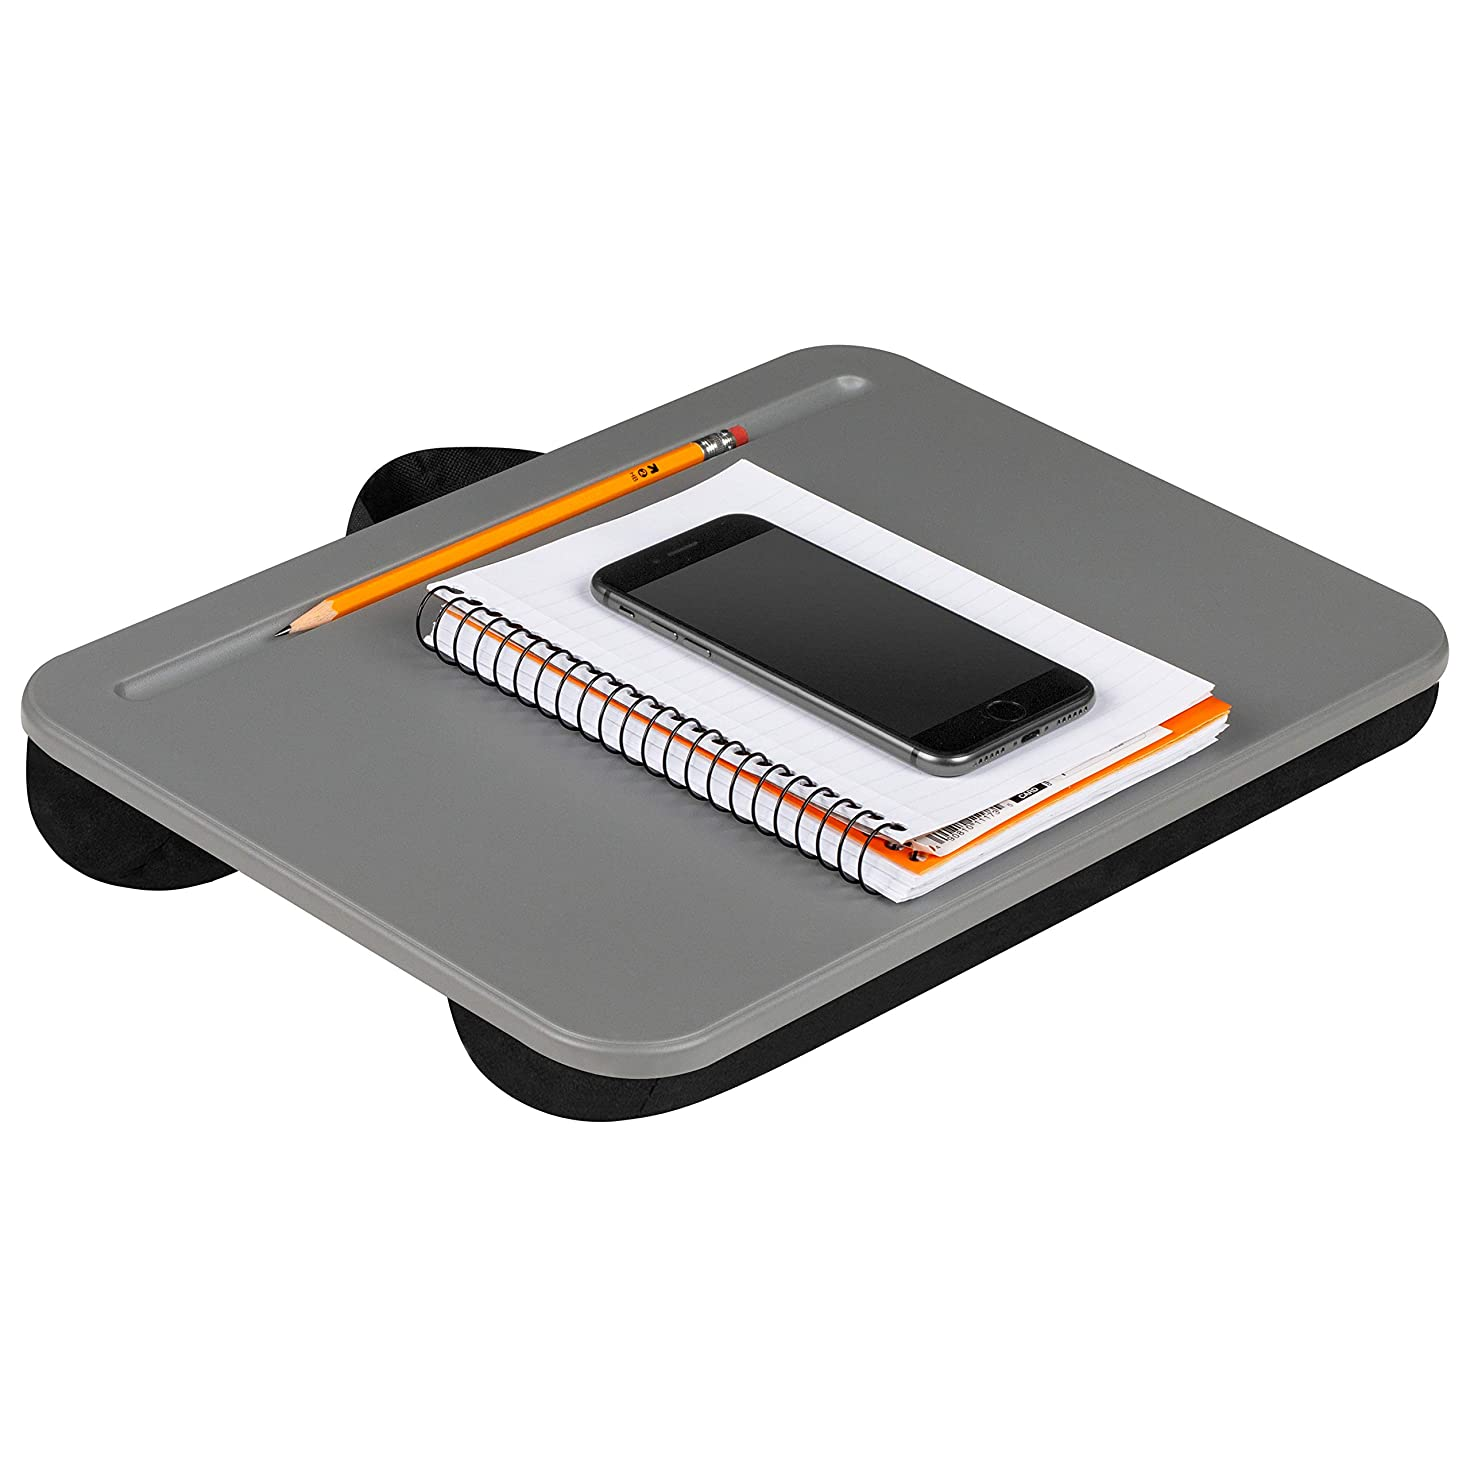 LapGear Compact Lap Desk - Charcoal (Fits up to 13.3